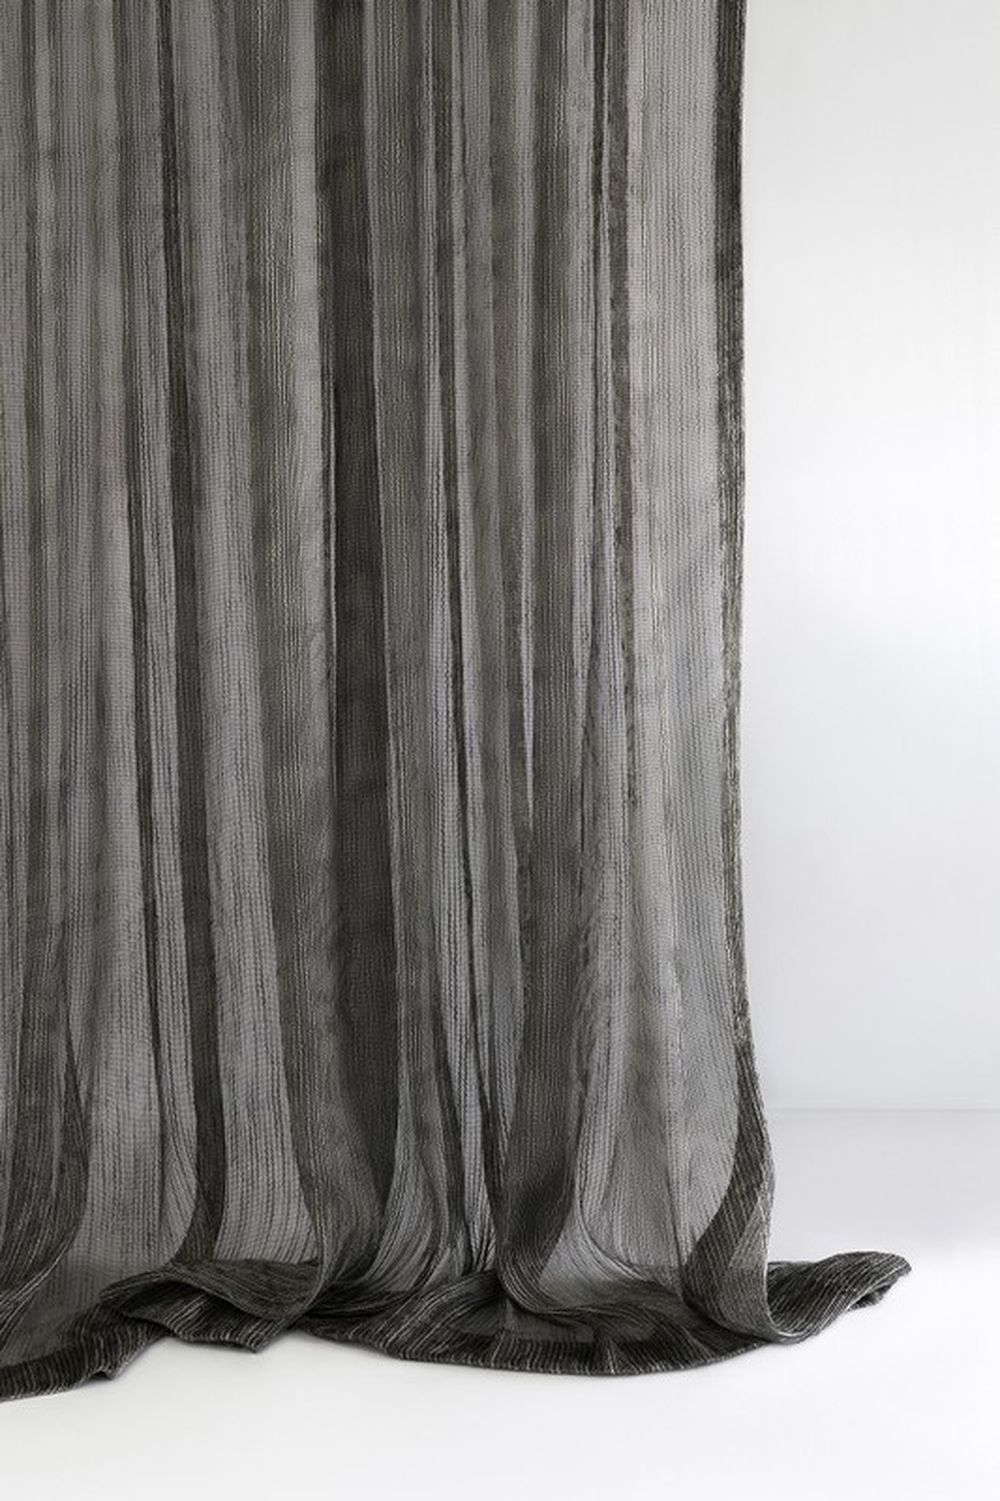 Photo of the fabric Hessian* Linen in situ by Mokum. Use for Sheer Curtains. Style of Abstract, Pattern, Sheer, Texture